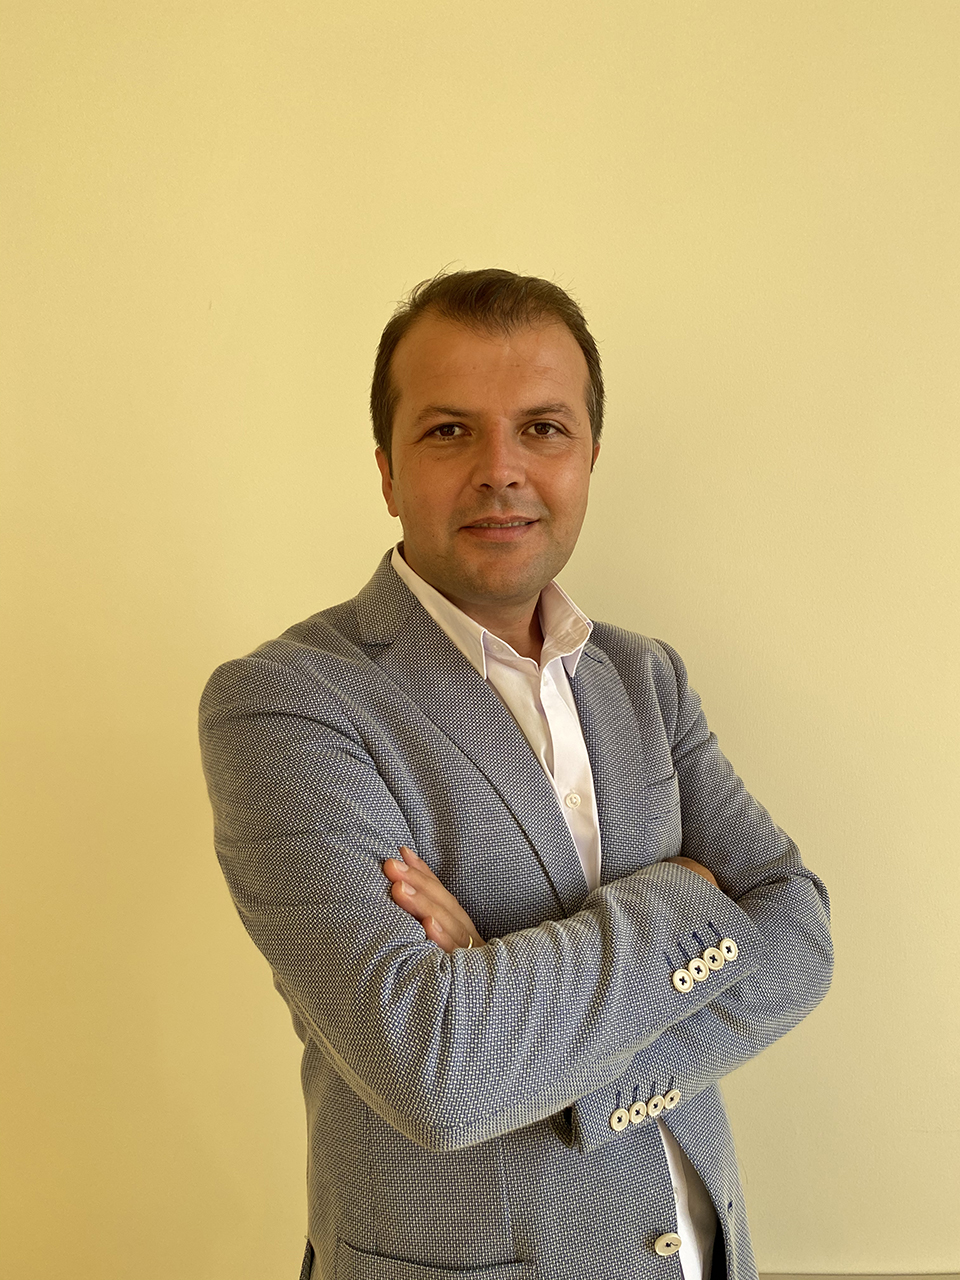 Ilhan Kurt, Senior Manager – designated head of research and development at Pearl Polyurethane Systems in Dubai, UAE. (Source: Pearl)